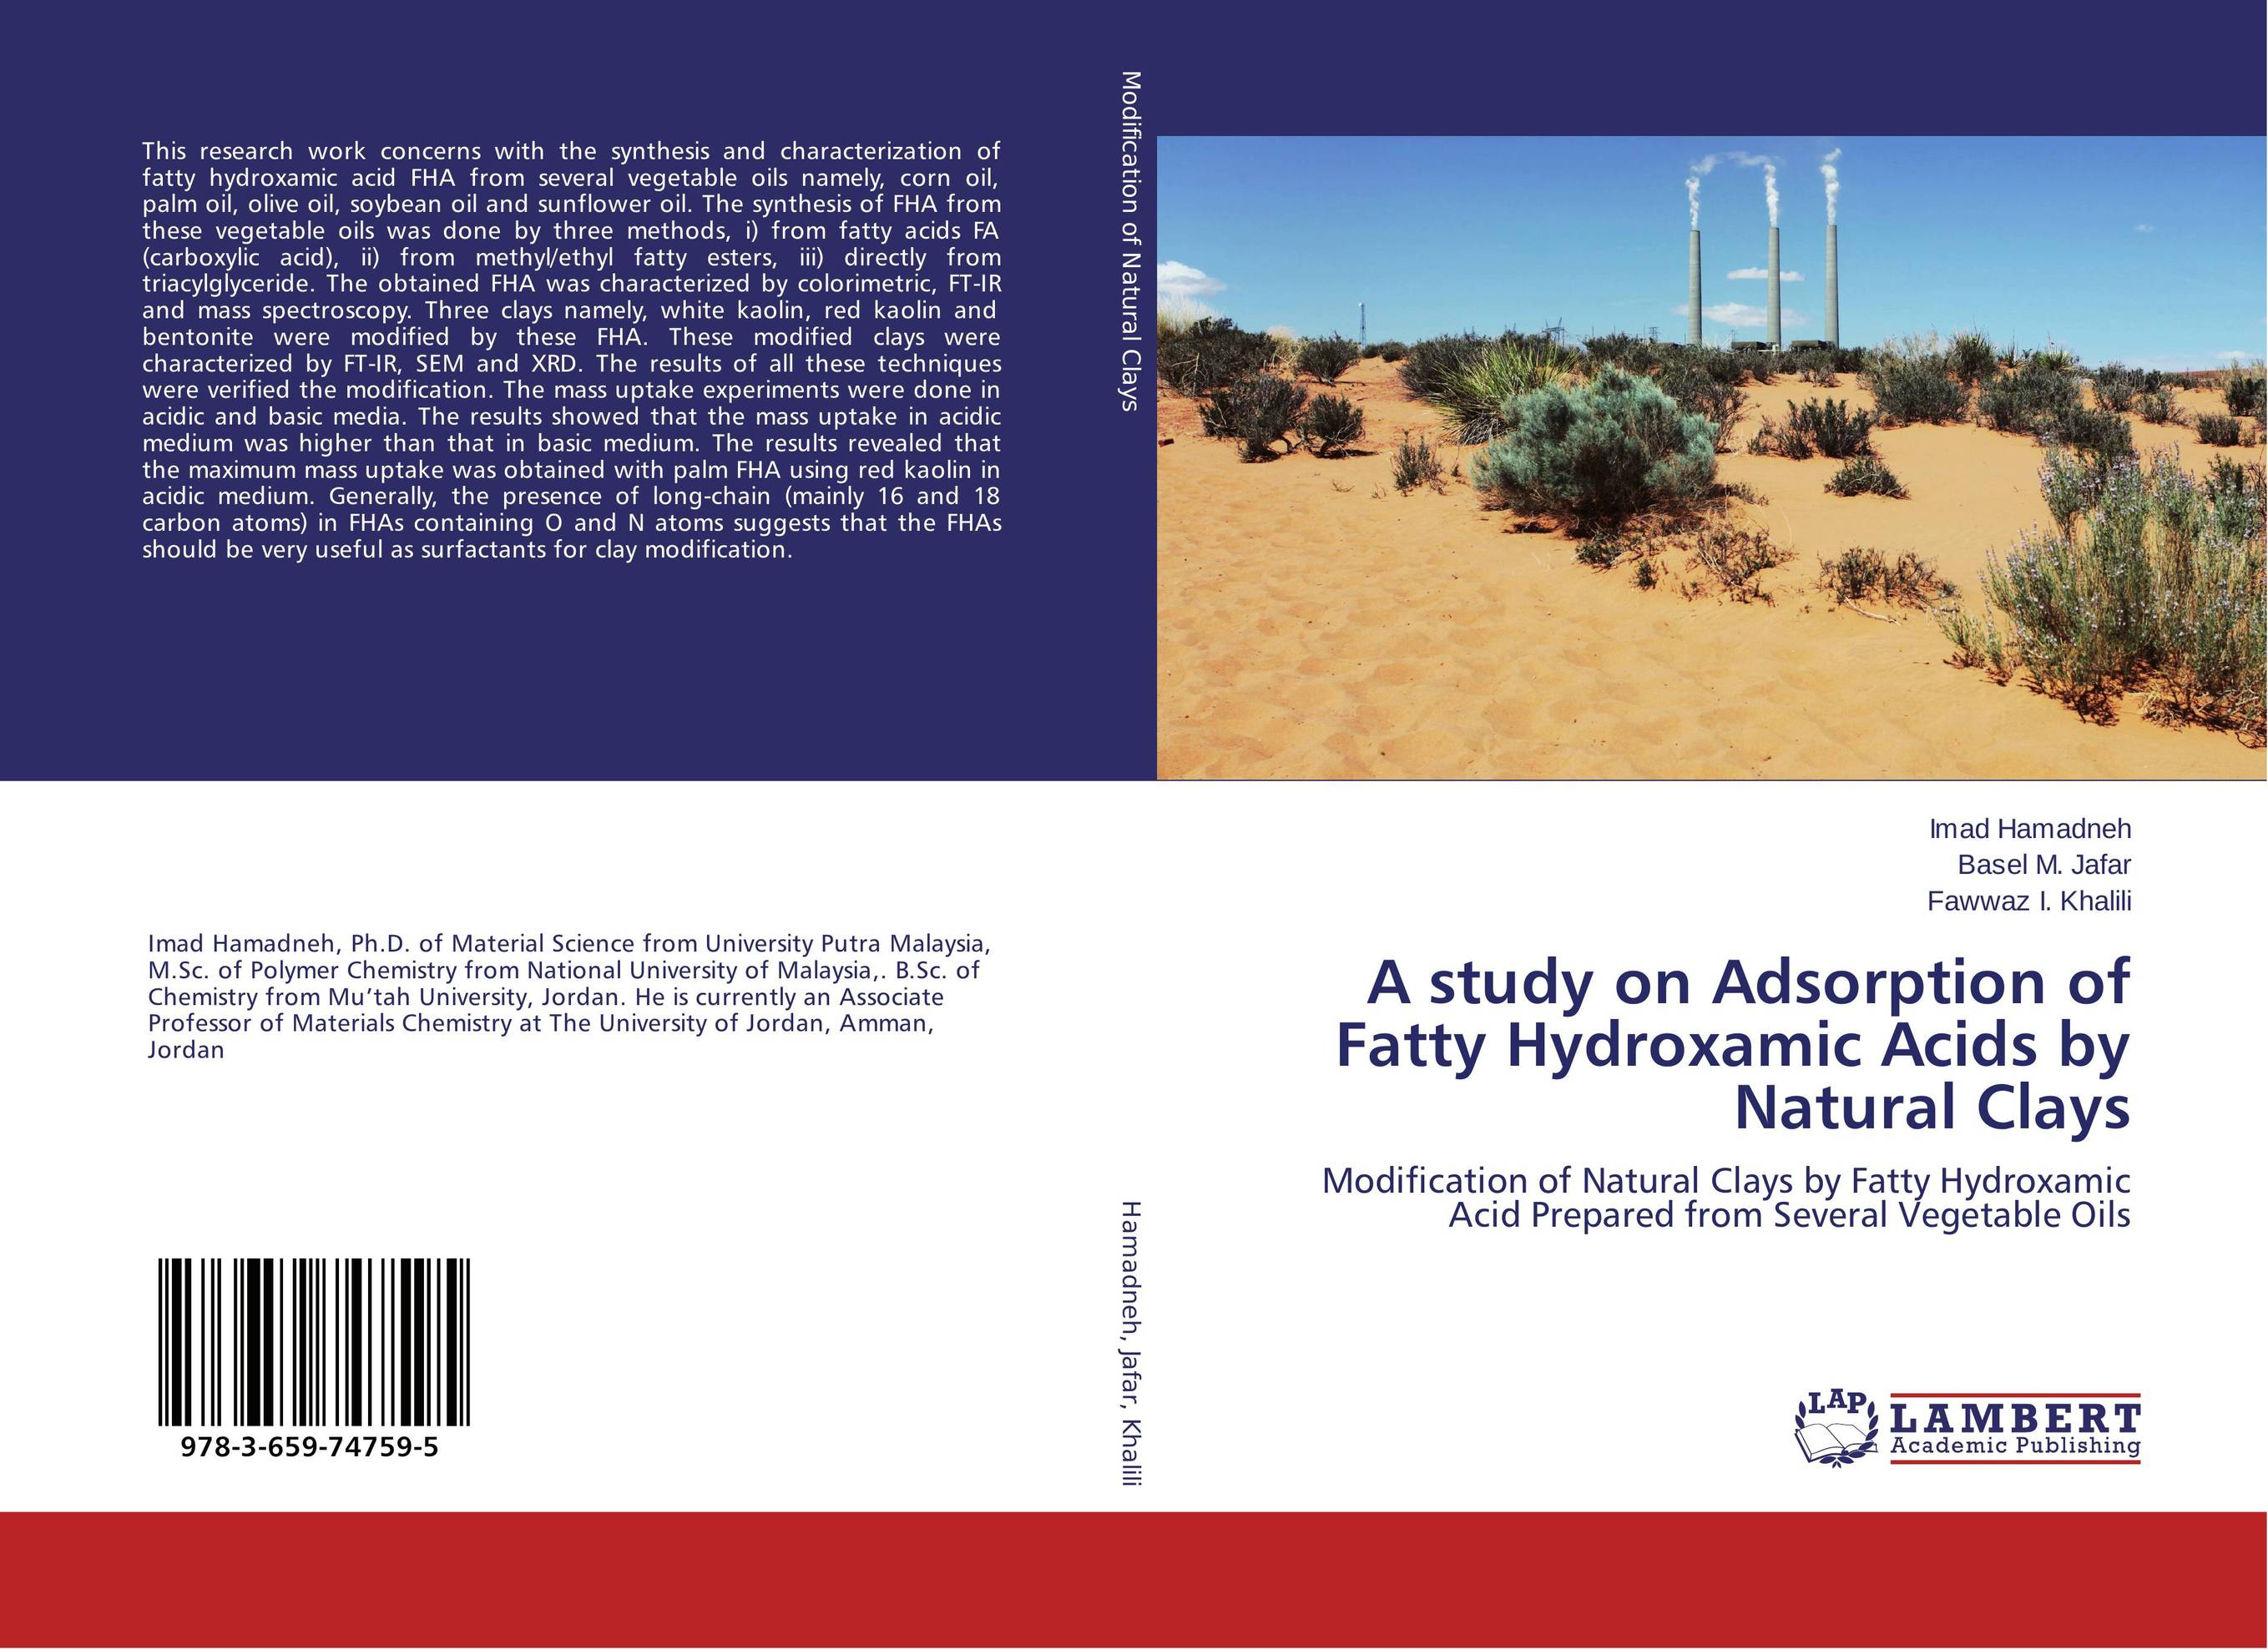 A study on Adsorption of Fatty Hydroxamic Acids by Natural Clays